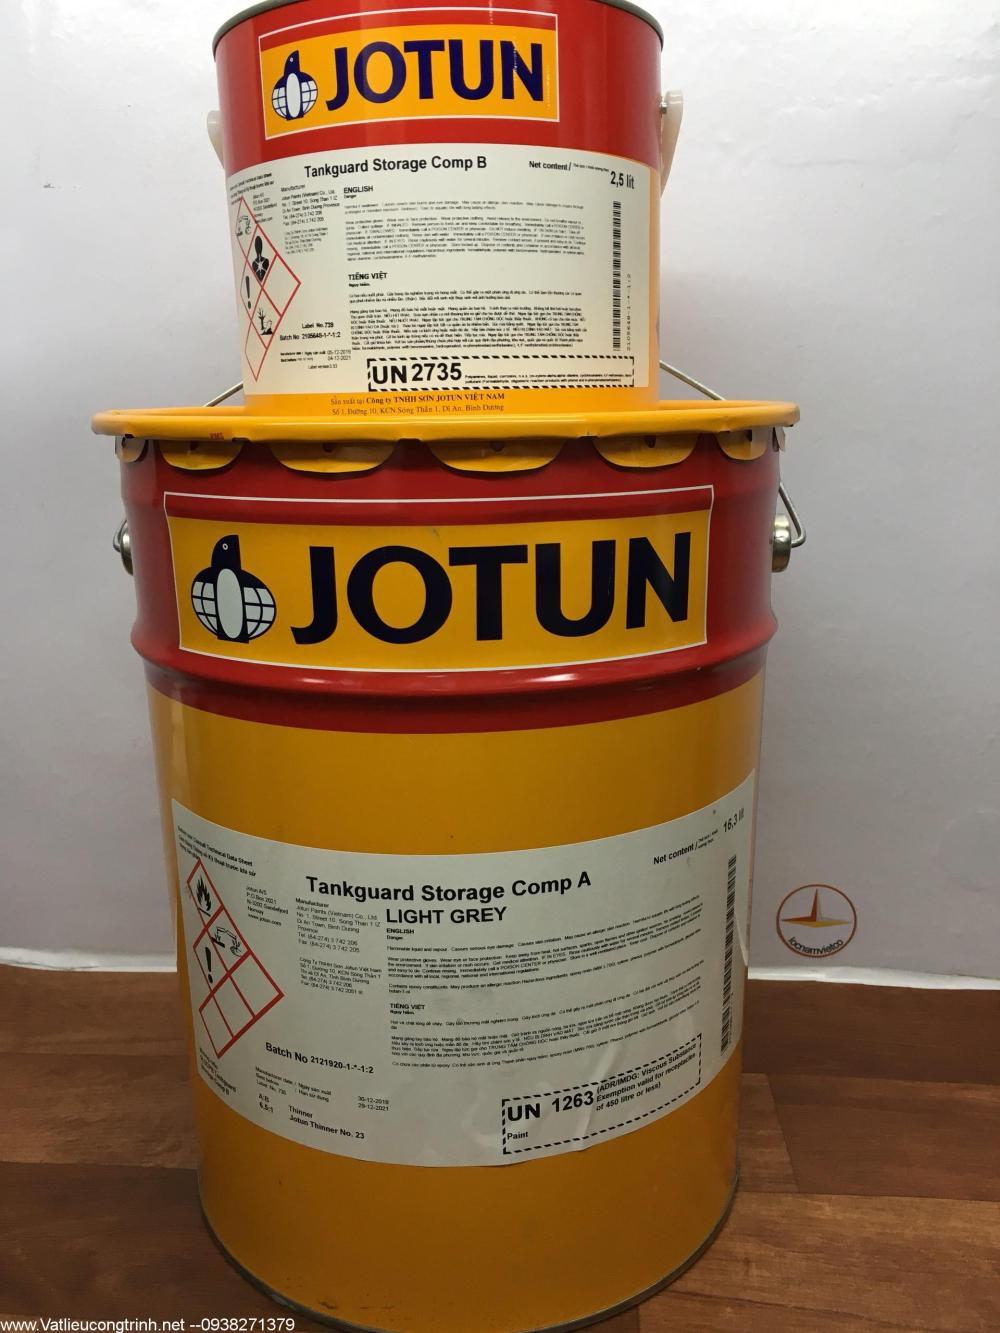 SON JOTUN TANK GUARD STORAGE 18 (3)